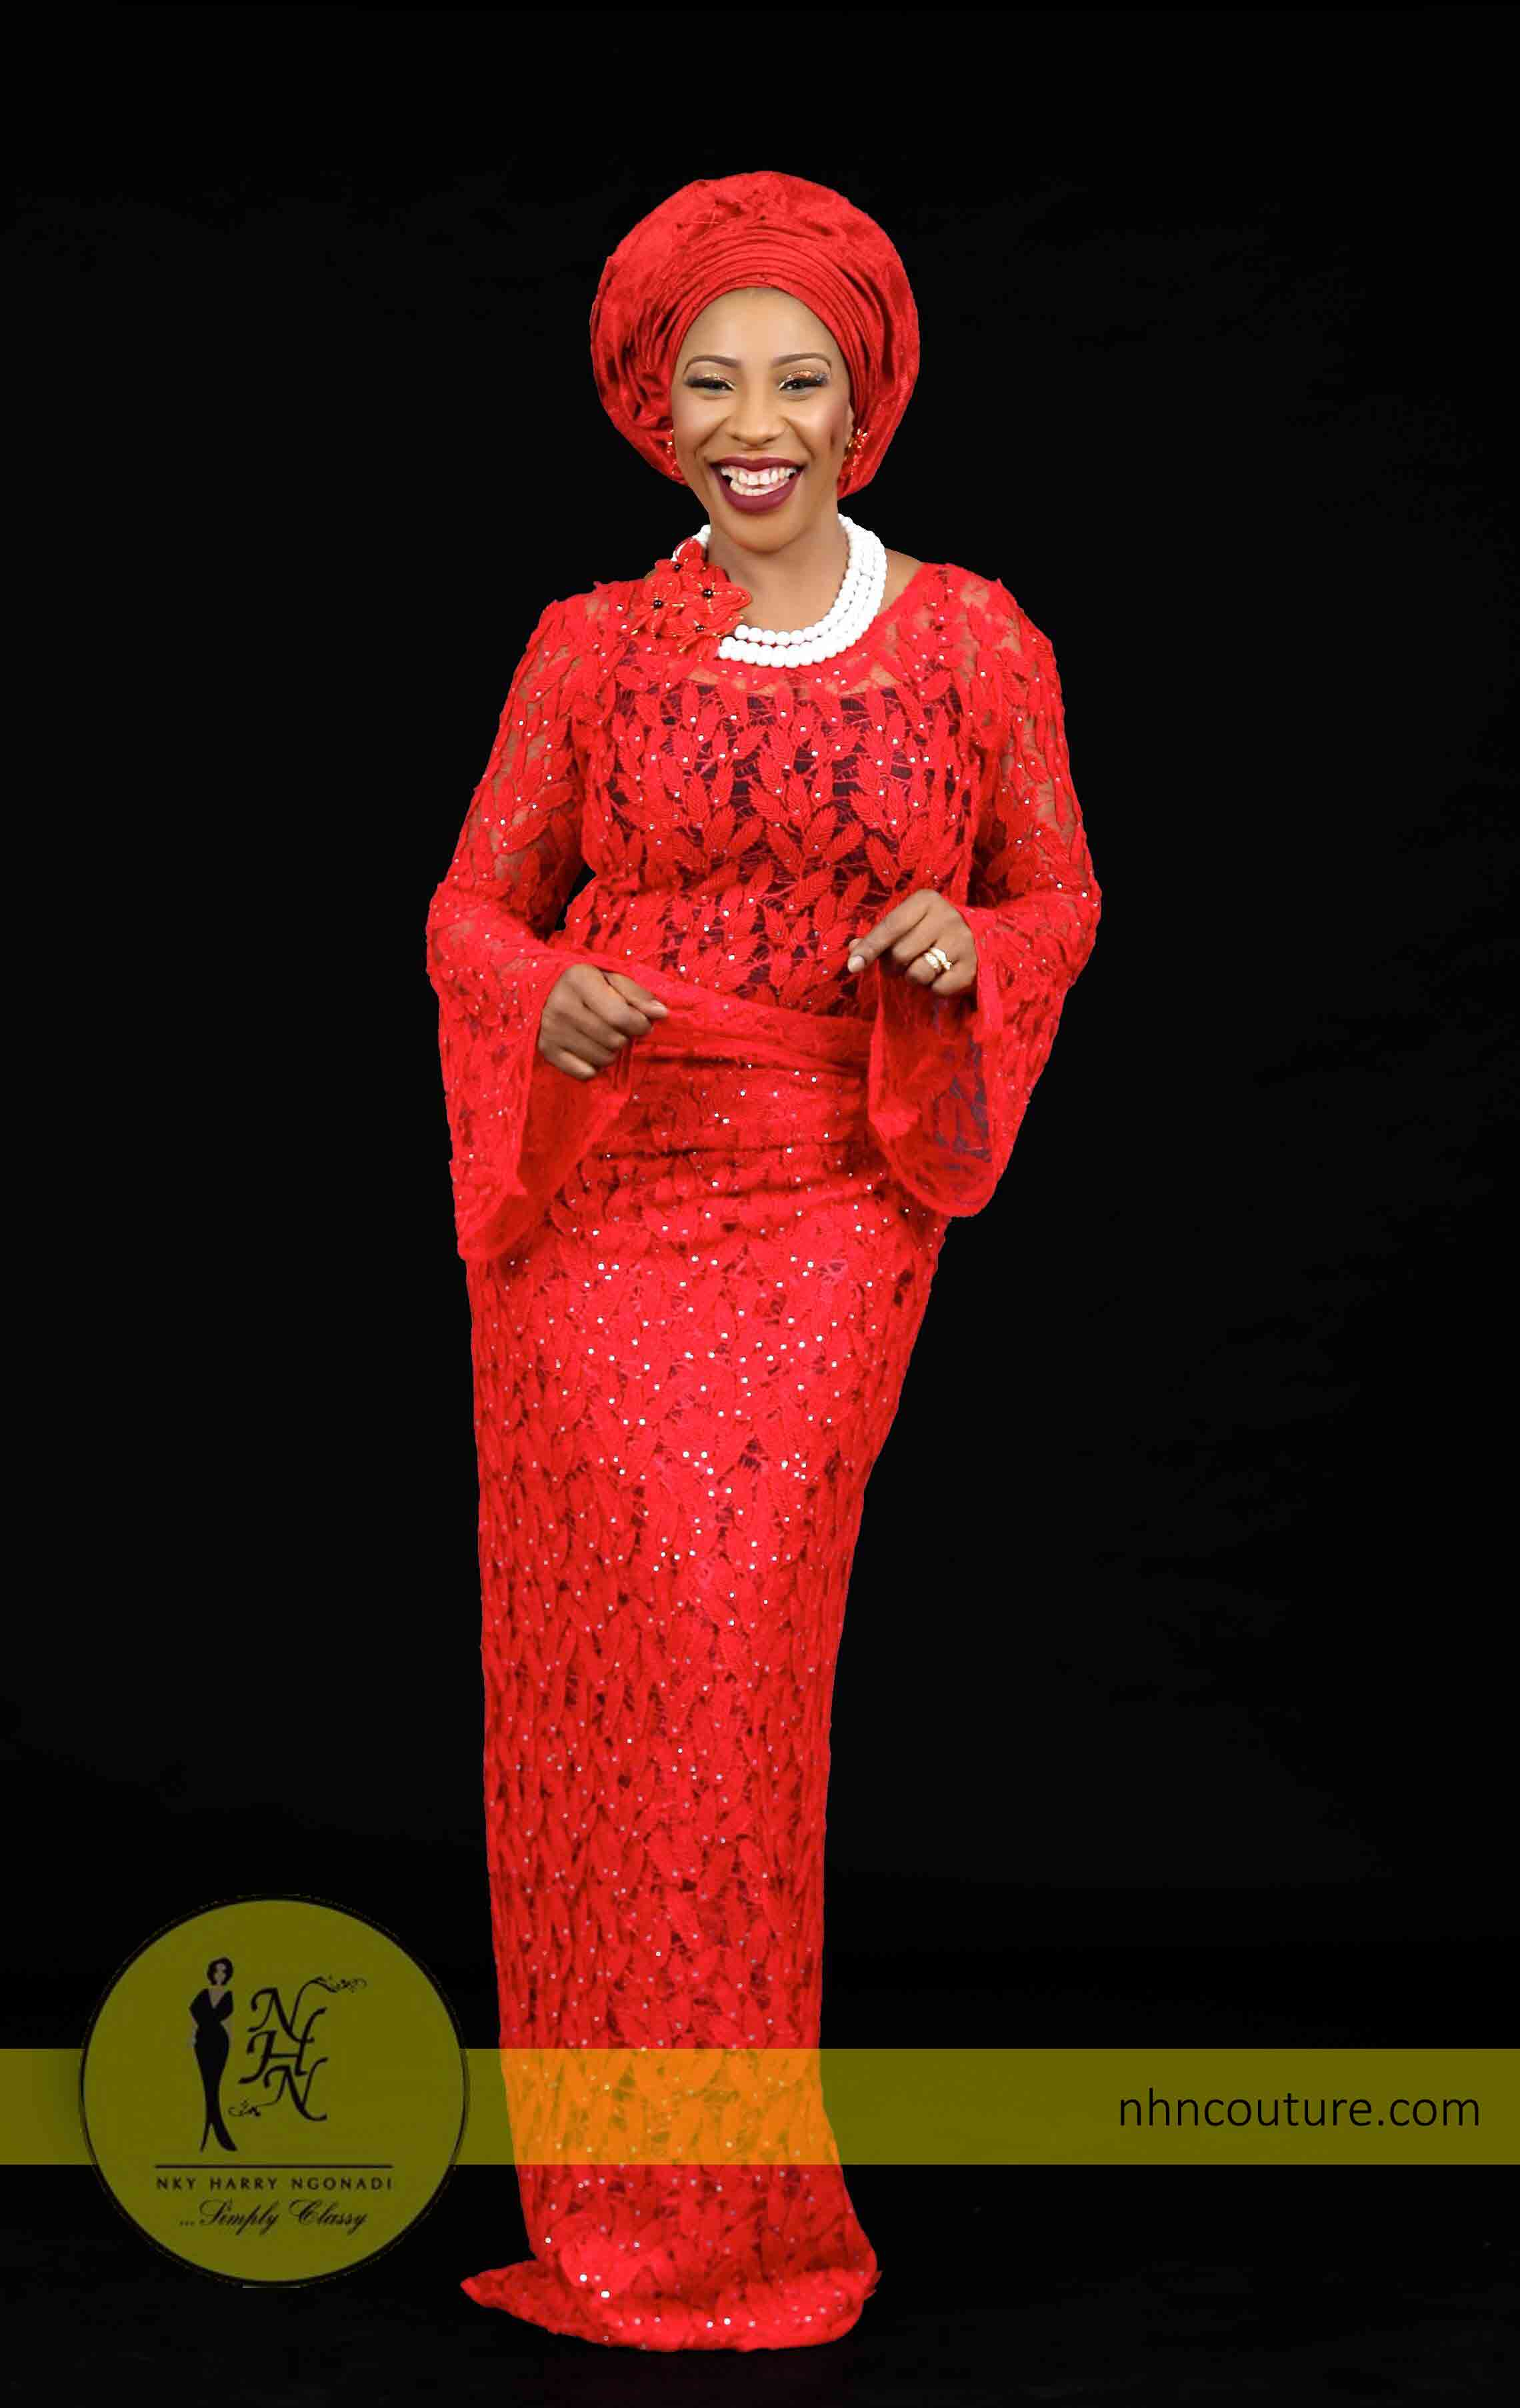 Team-Red-NHNCouture-Lookbook-Asoebi-Colour-Inspiration-4